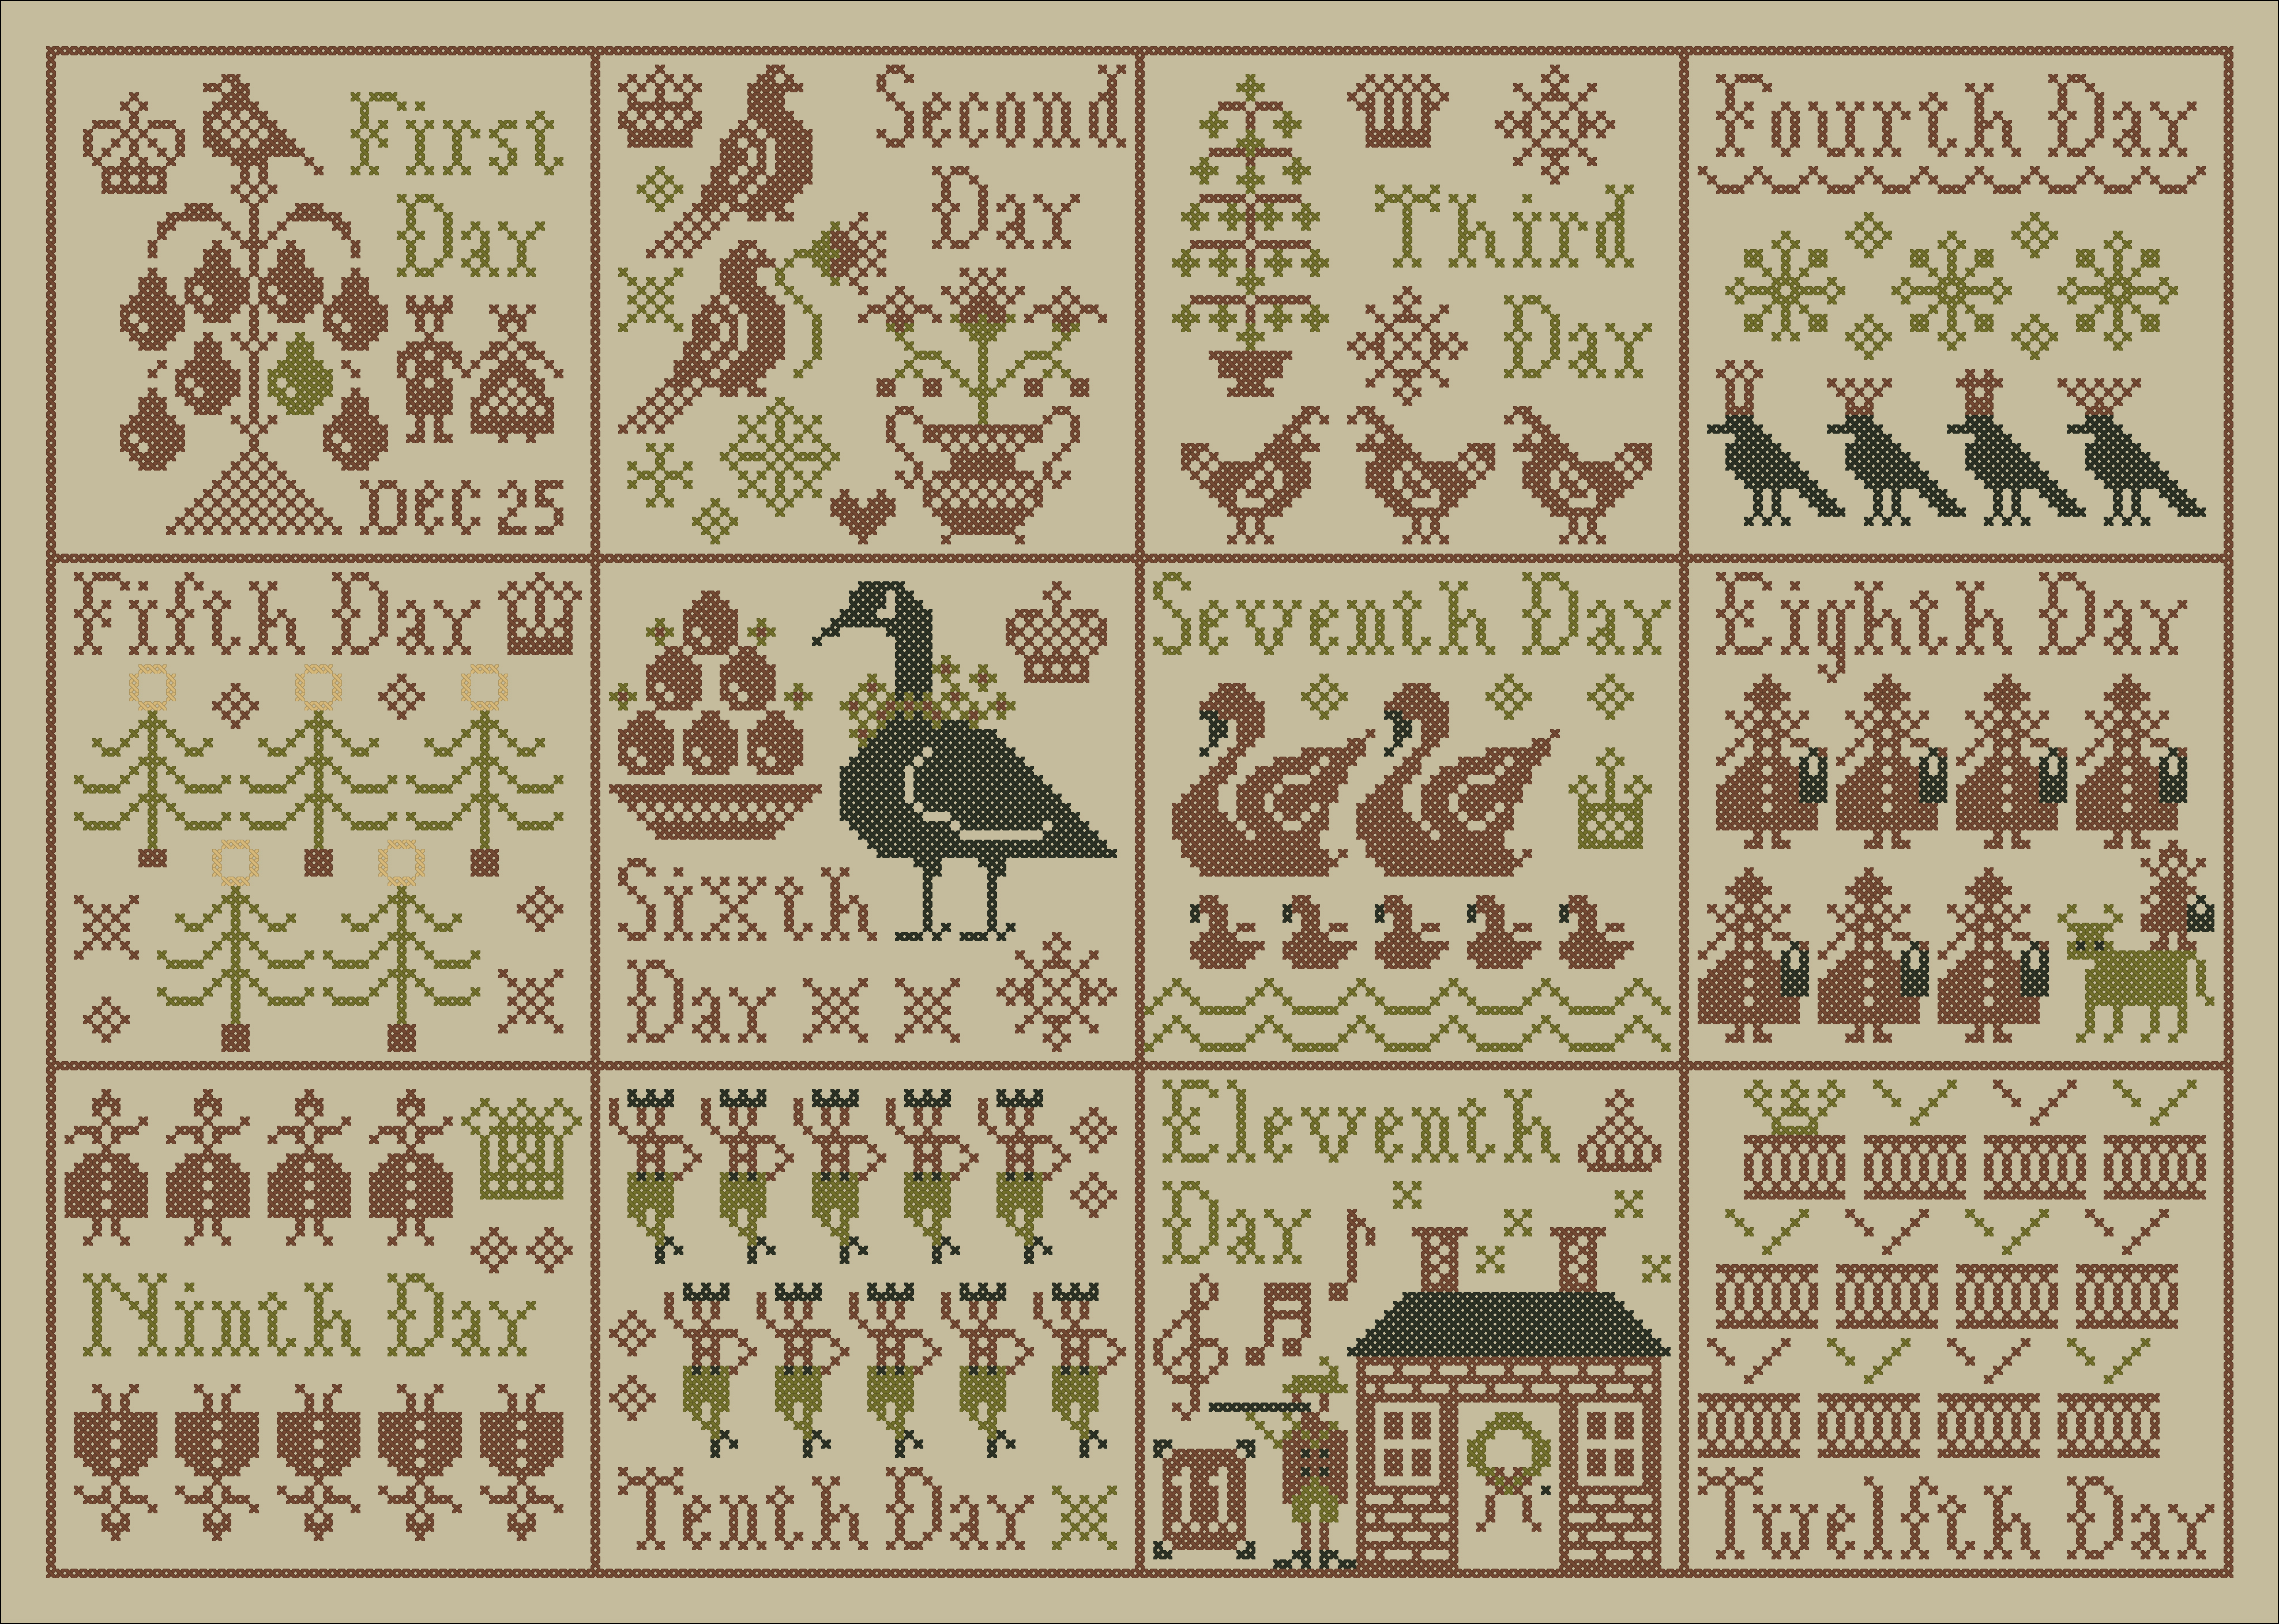 12 Days Of Christmas Cross Stitch.Plum Street Samplers The Grand Finale